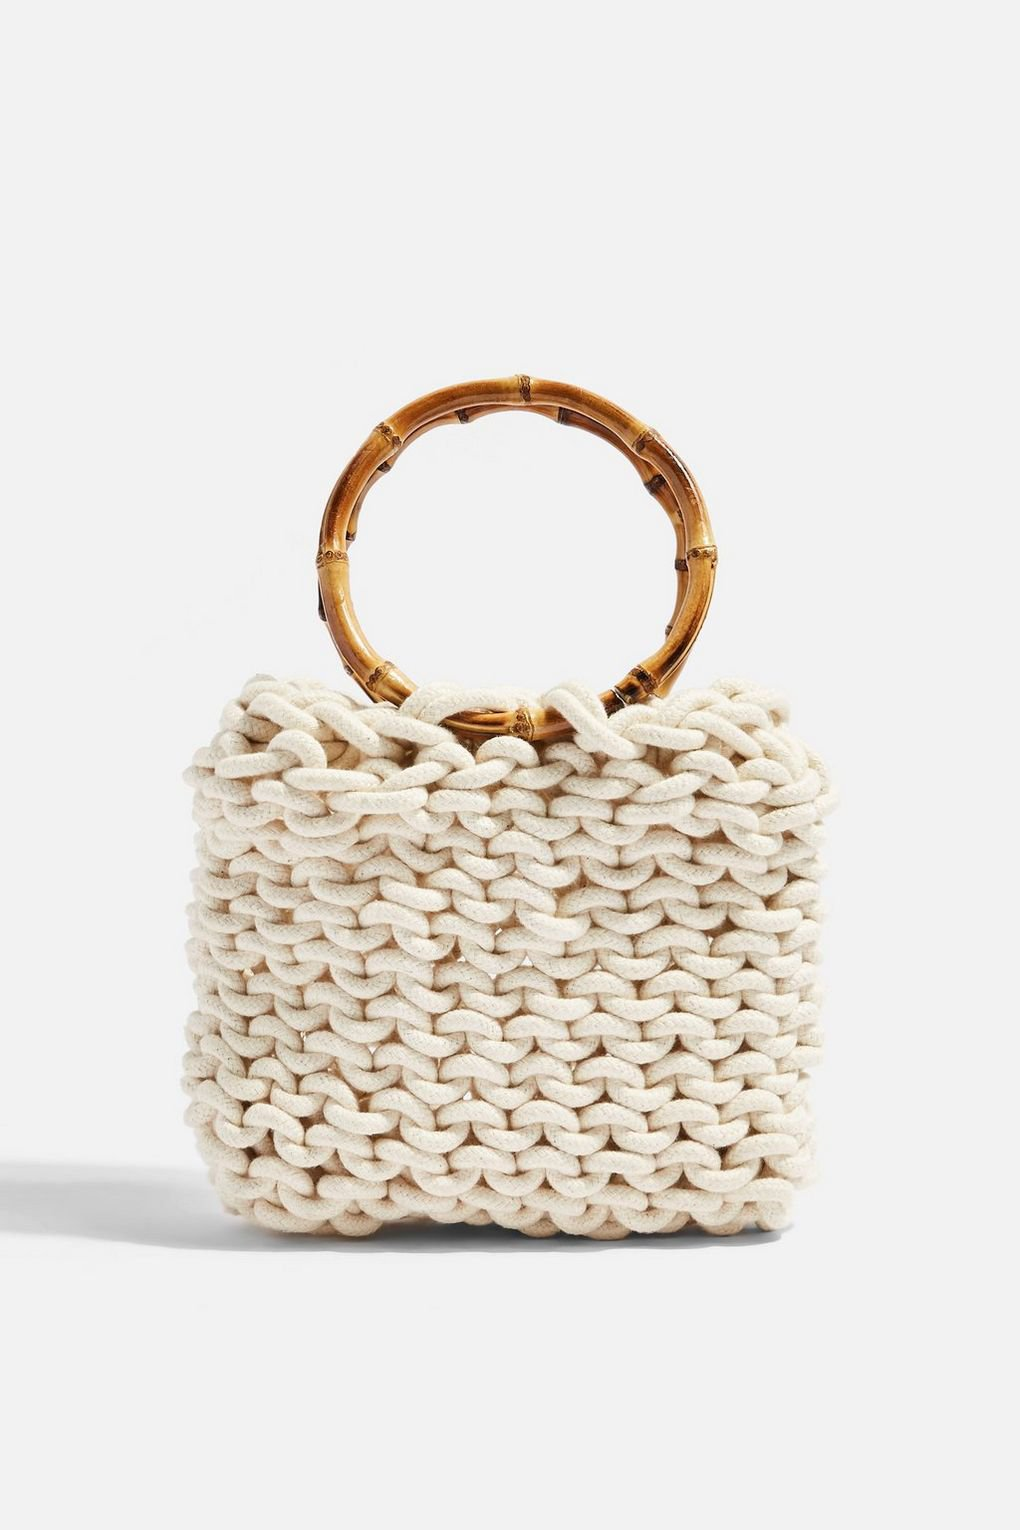 FLAME Rope Tote Bag - New In Fashion - New In - Topshop USA